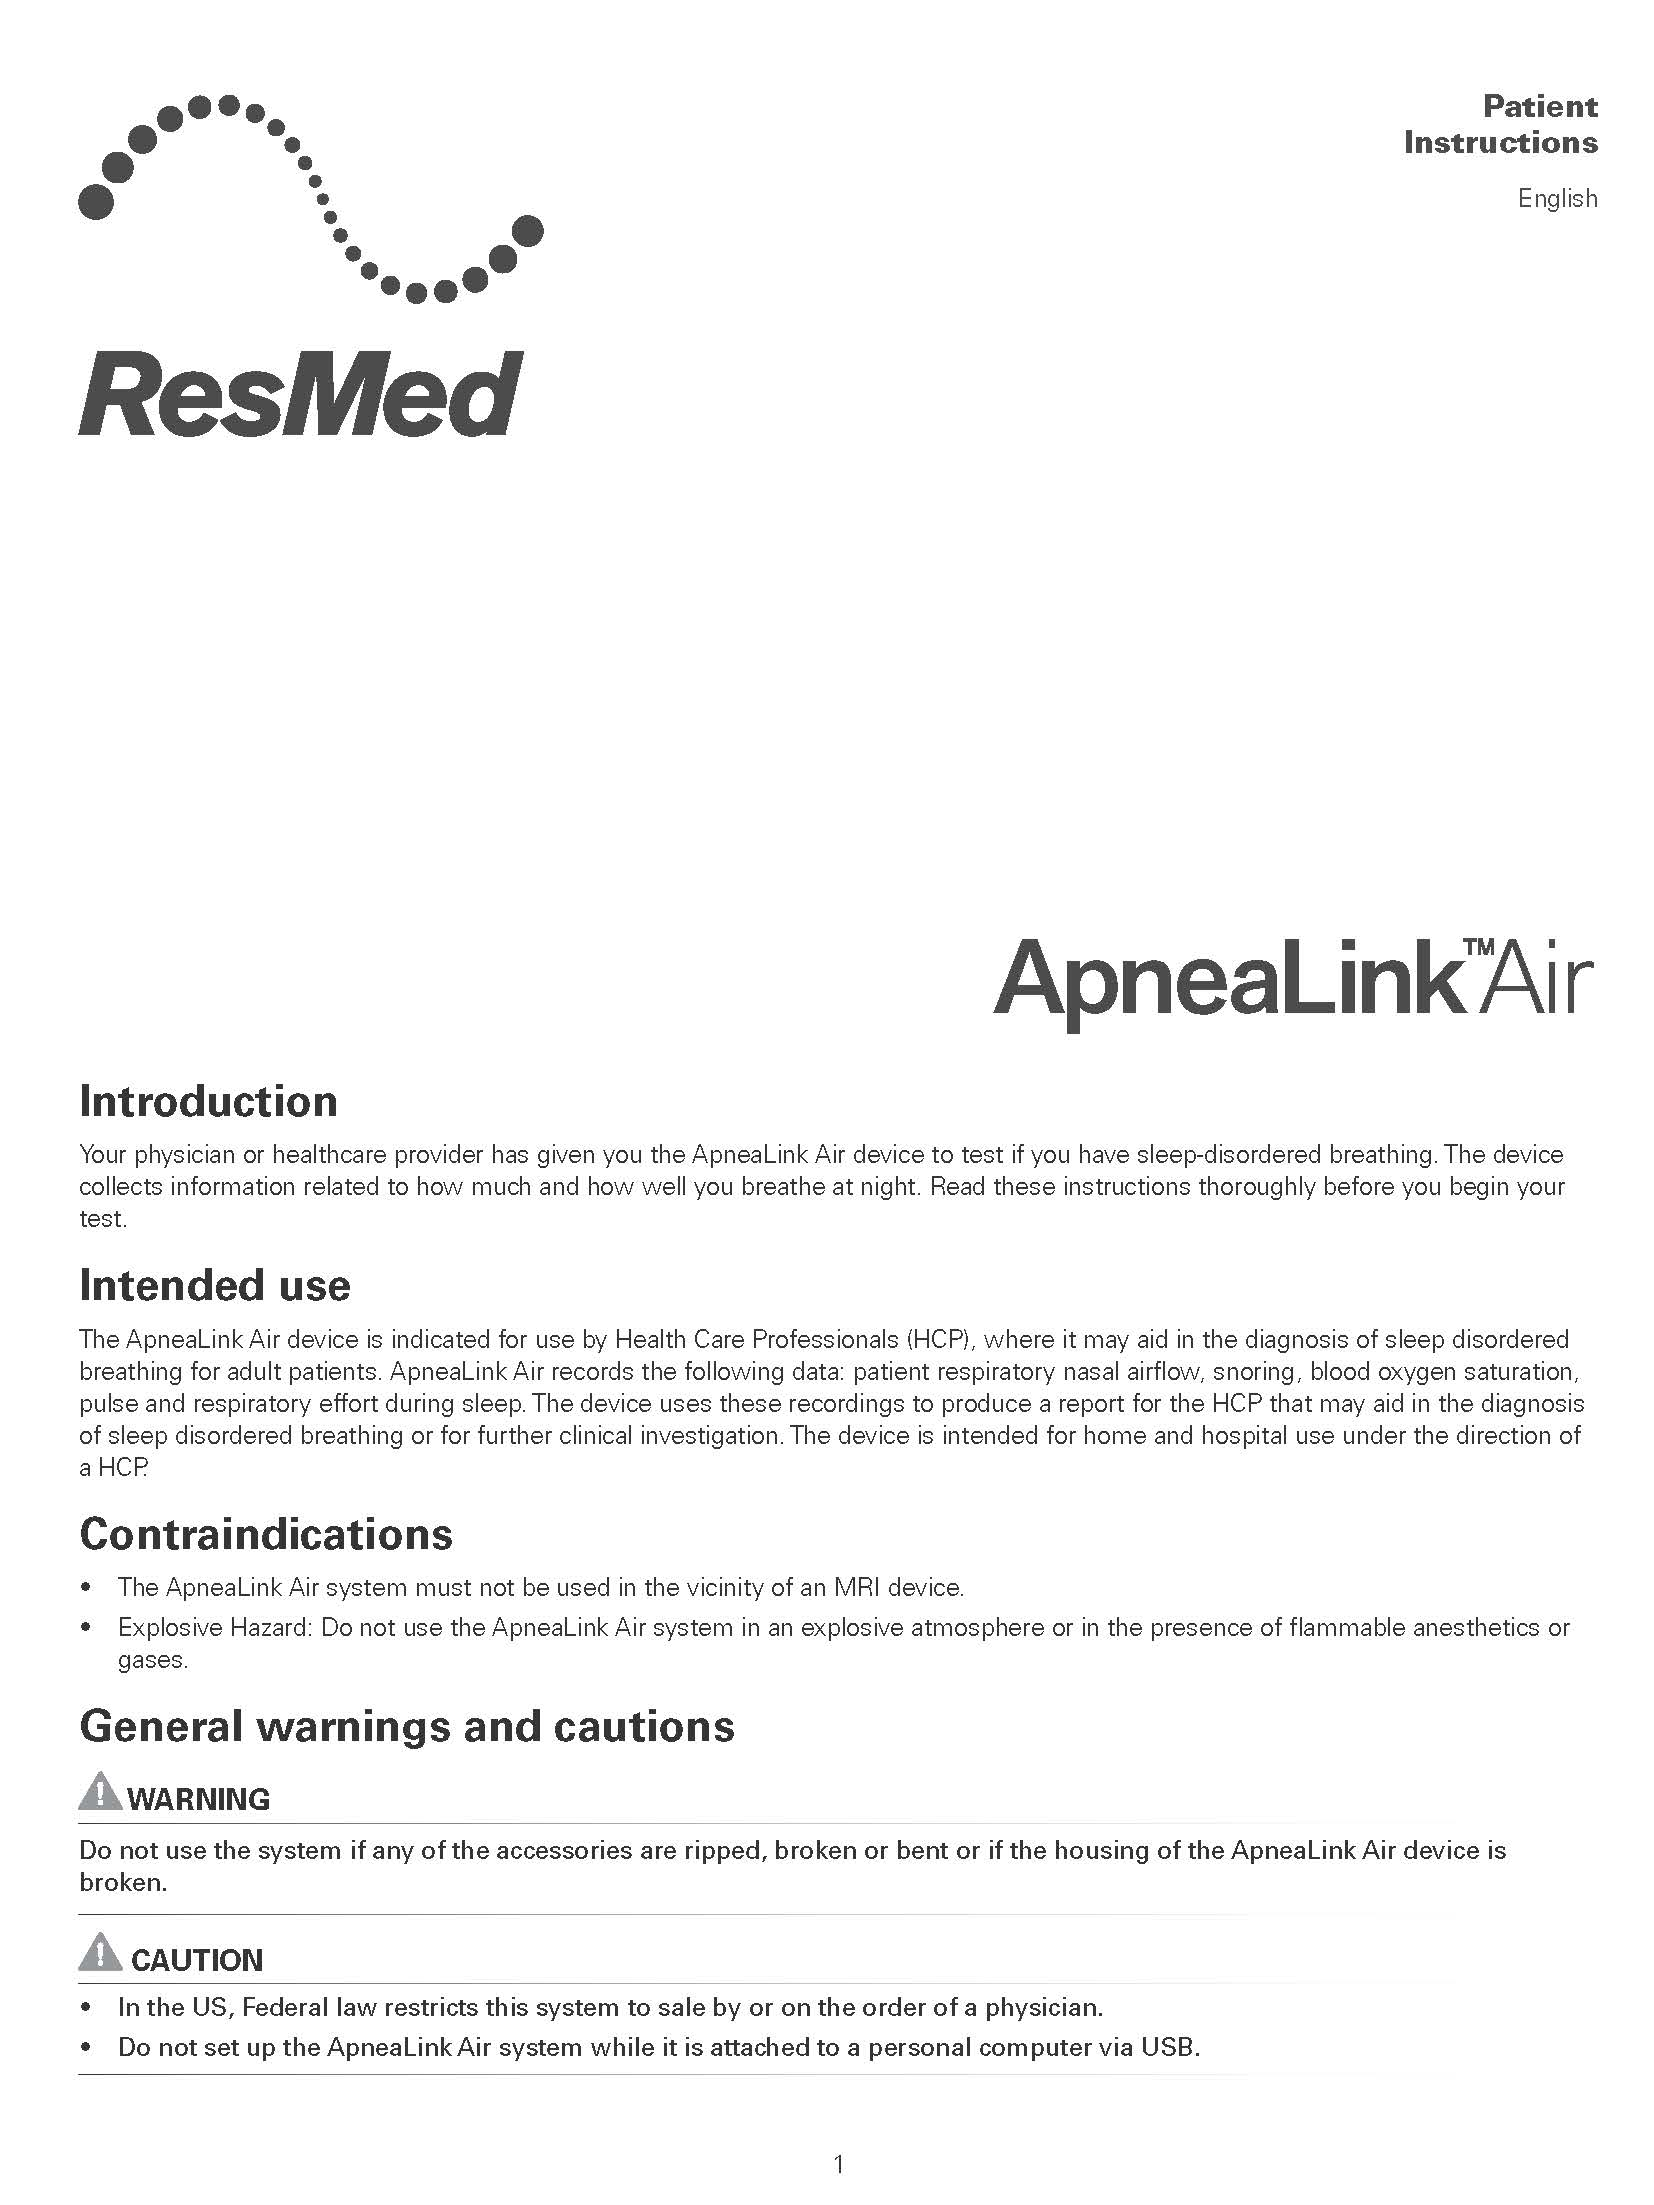 228691_apnealink-air_patient-instructions_glo_eng_Page_1.jpg